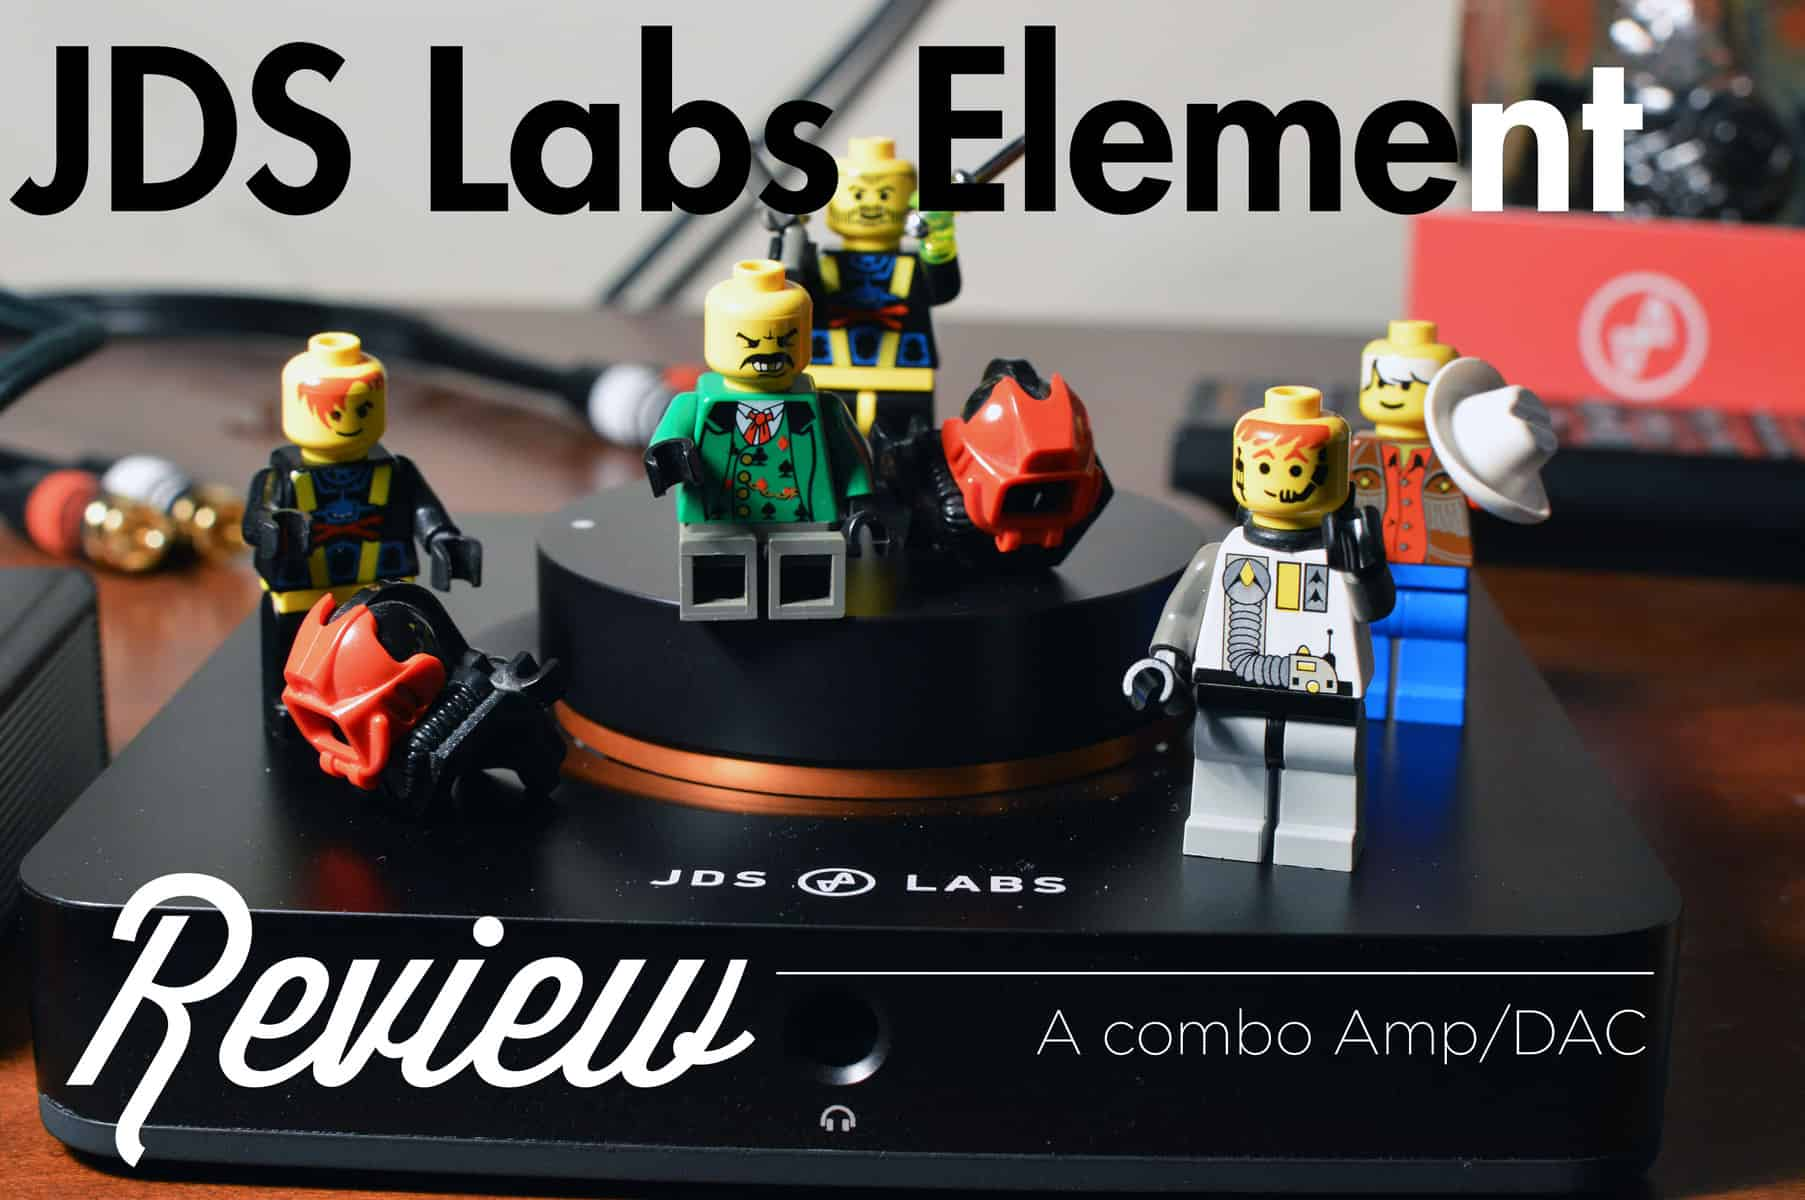 JDS Labs Element Review